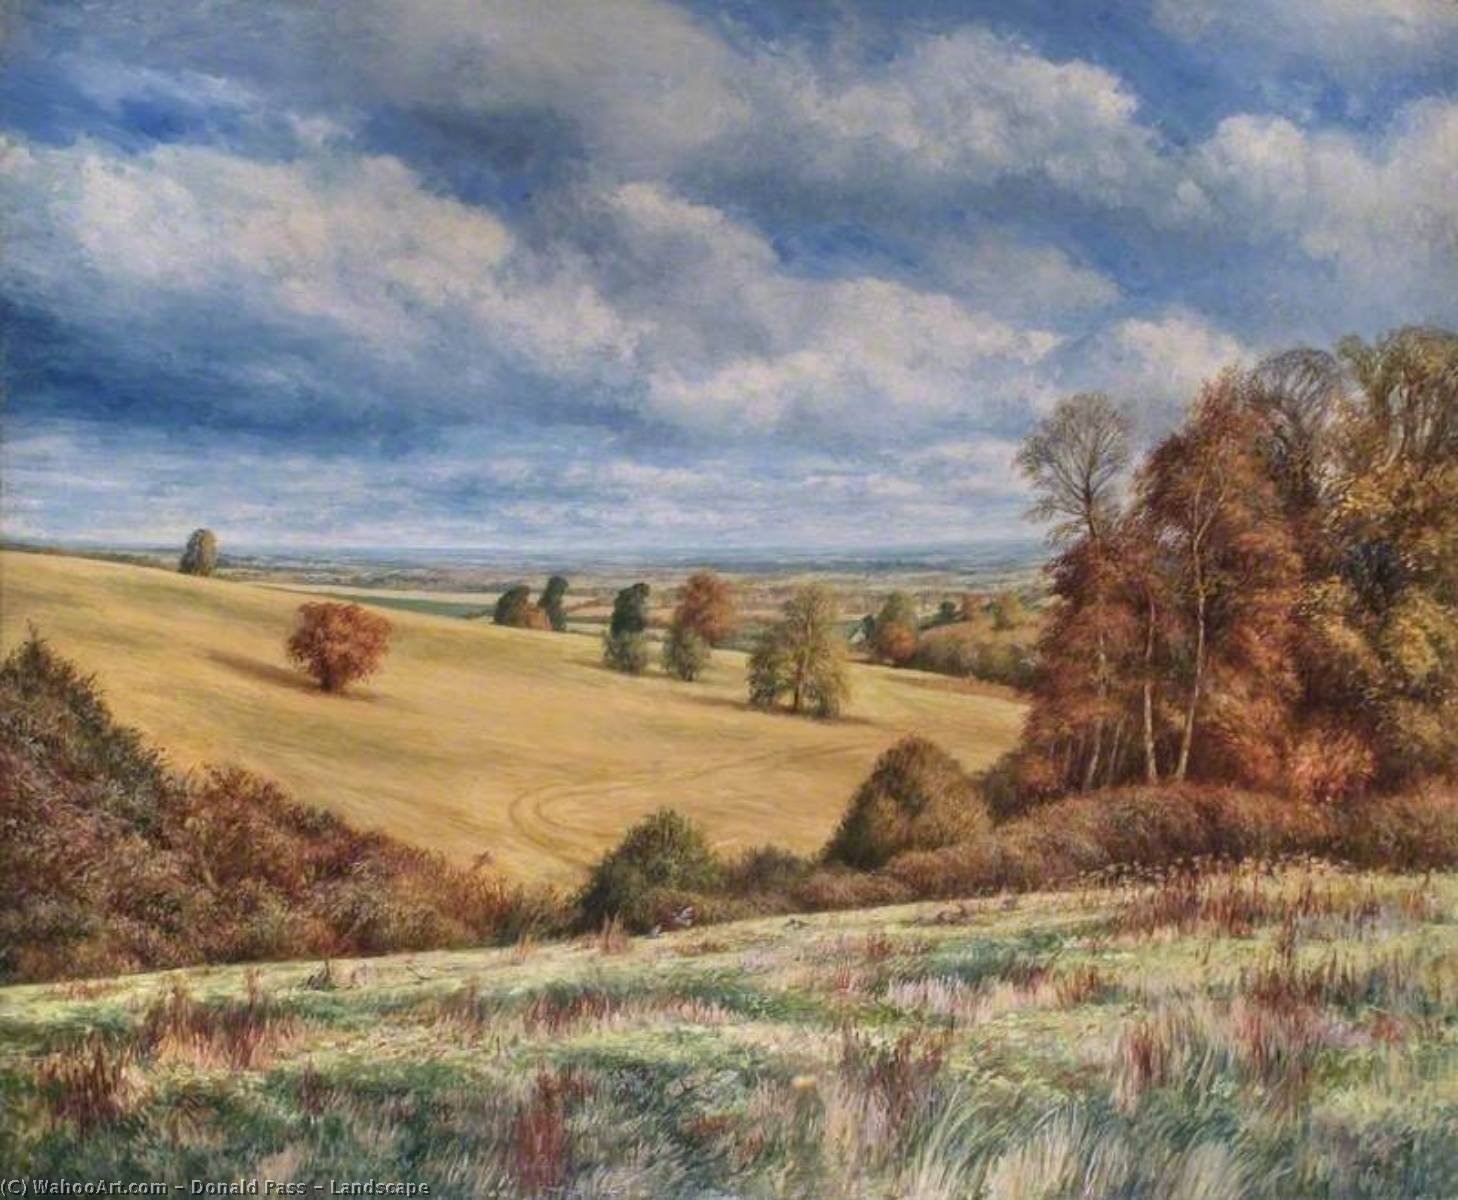 Wikioo.org - The Encyclopedia of Fine Arts - Painting, Artwork by Donald Pass - Landscape